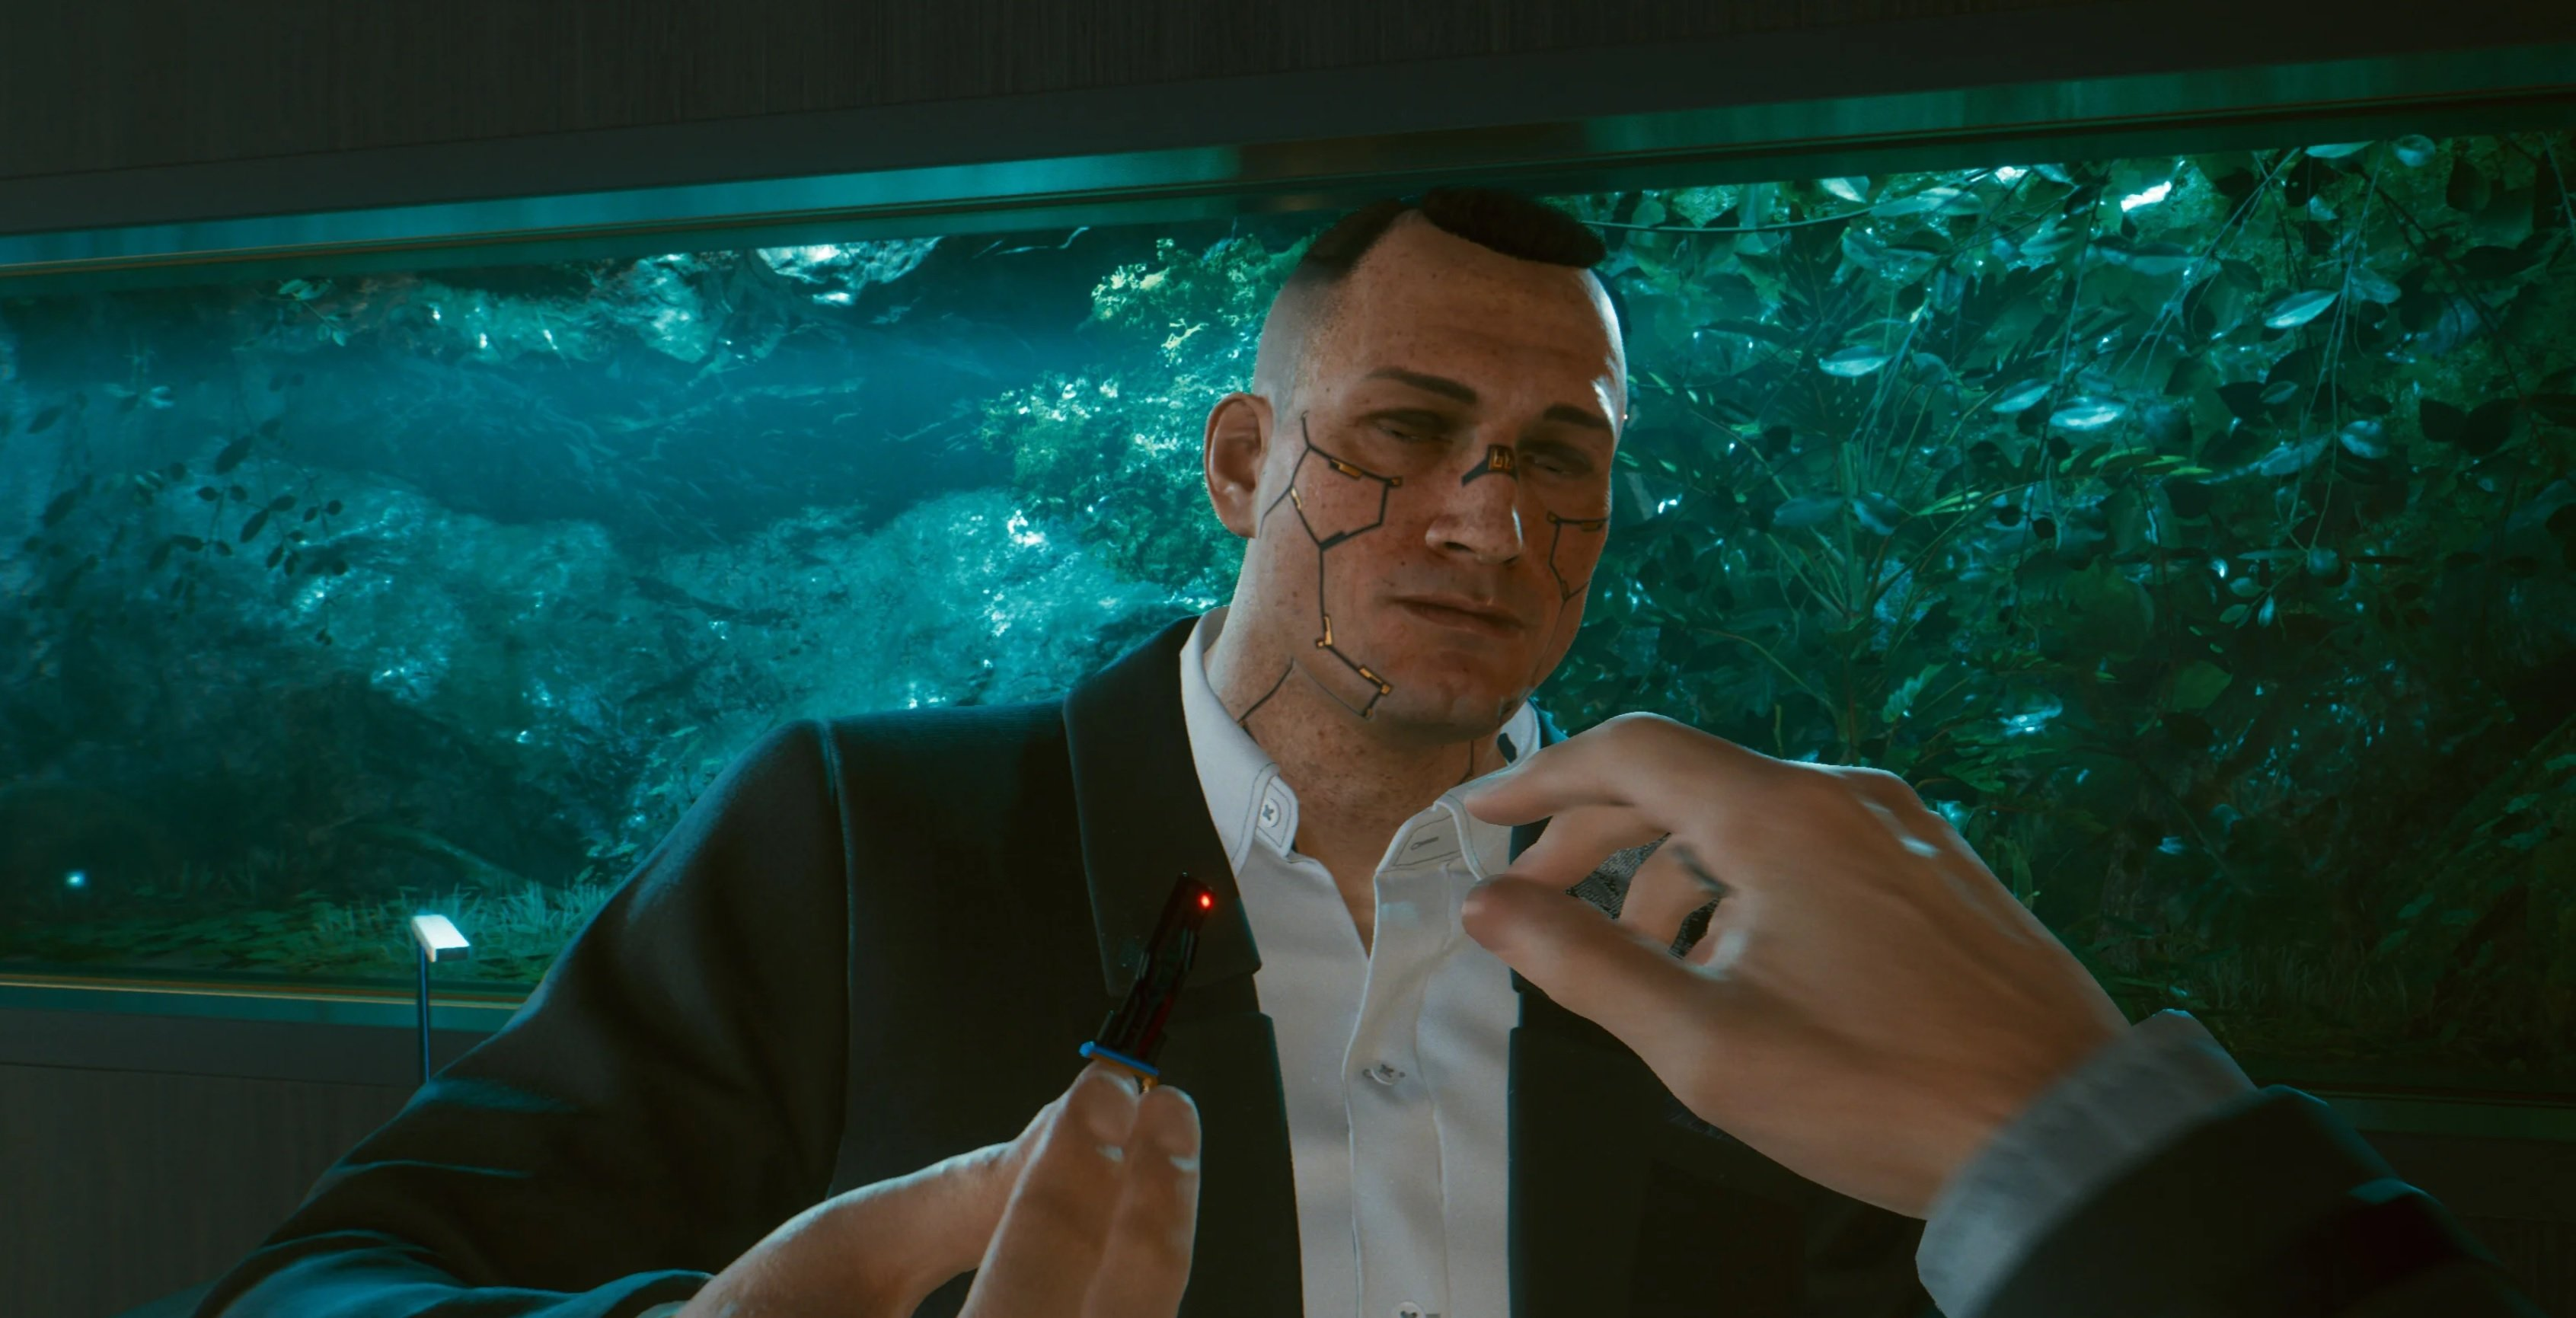 Now even the Polish government is allegedly investigating Cyberpunk 2077 screenshot